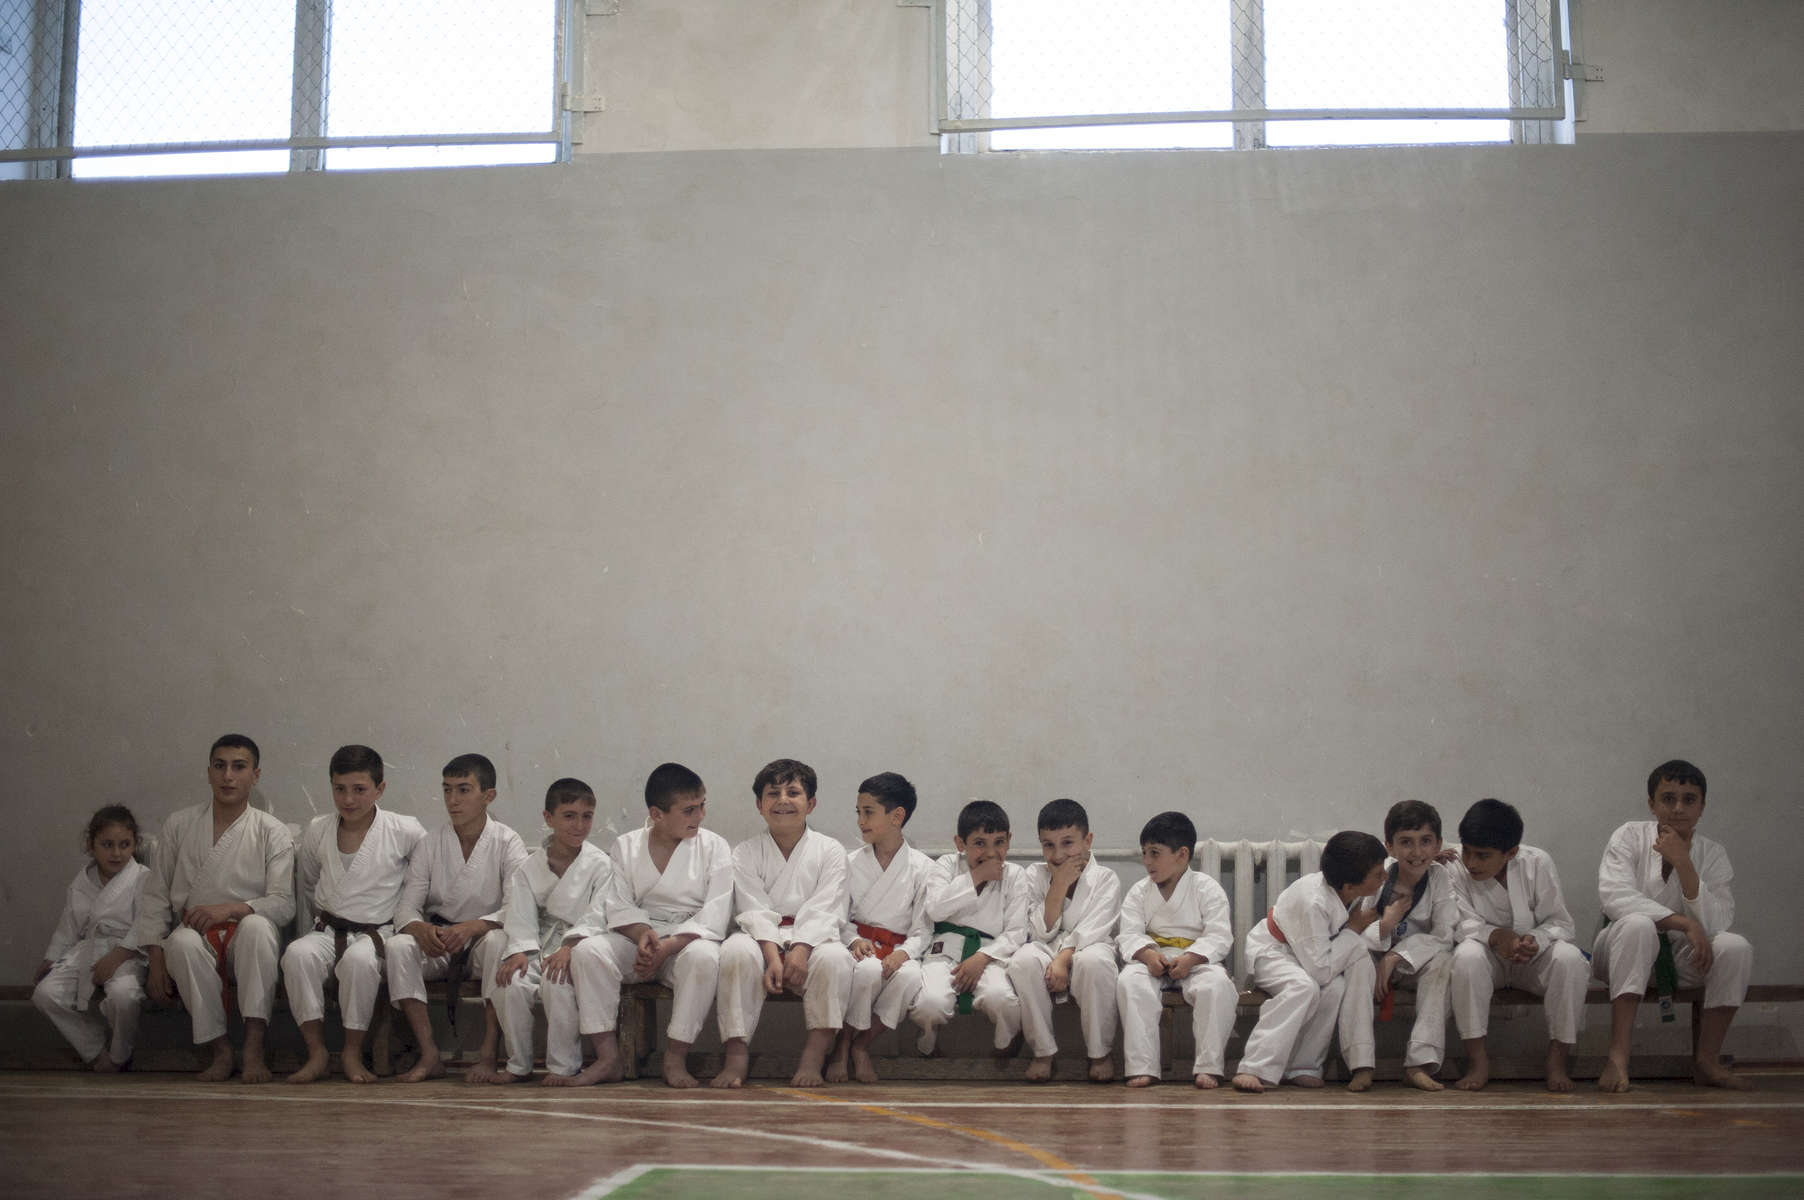 HALO supervisor Narek Arakelian teaches a karate class after work at School # 8 in Stepanakert.  His two daughters also participate in the classes and his eldest is a two-time champion.